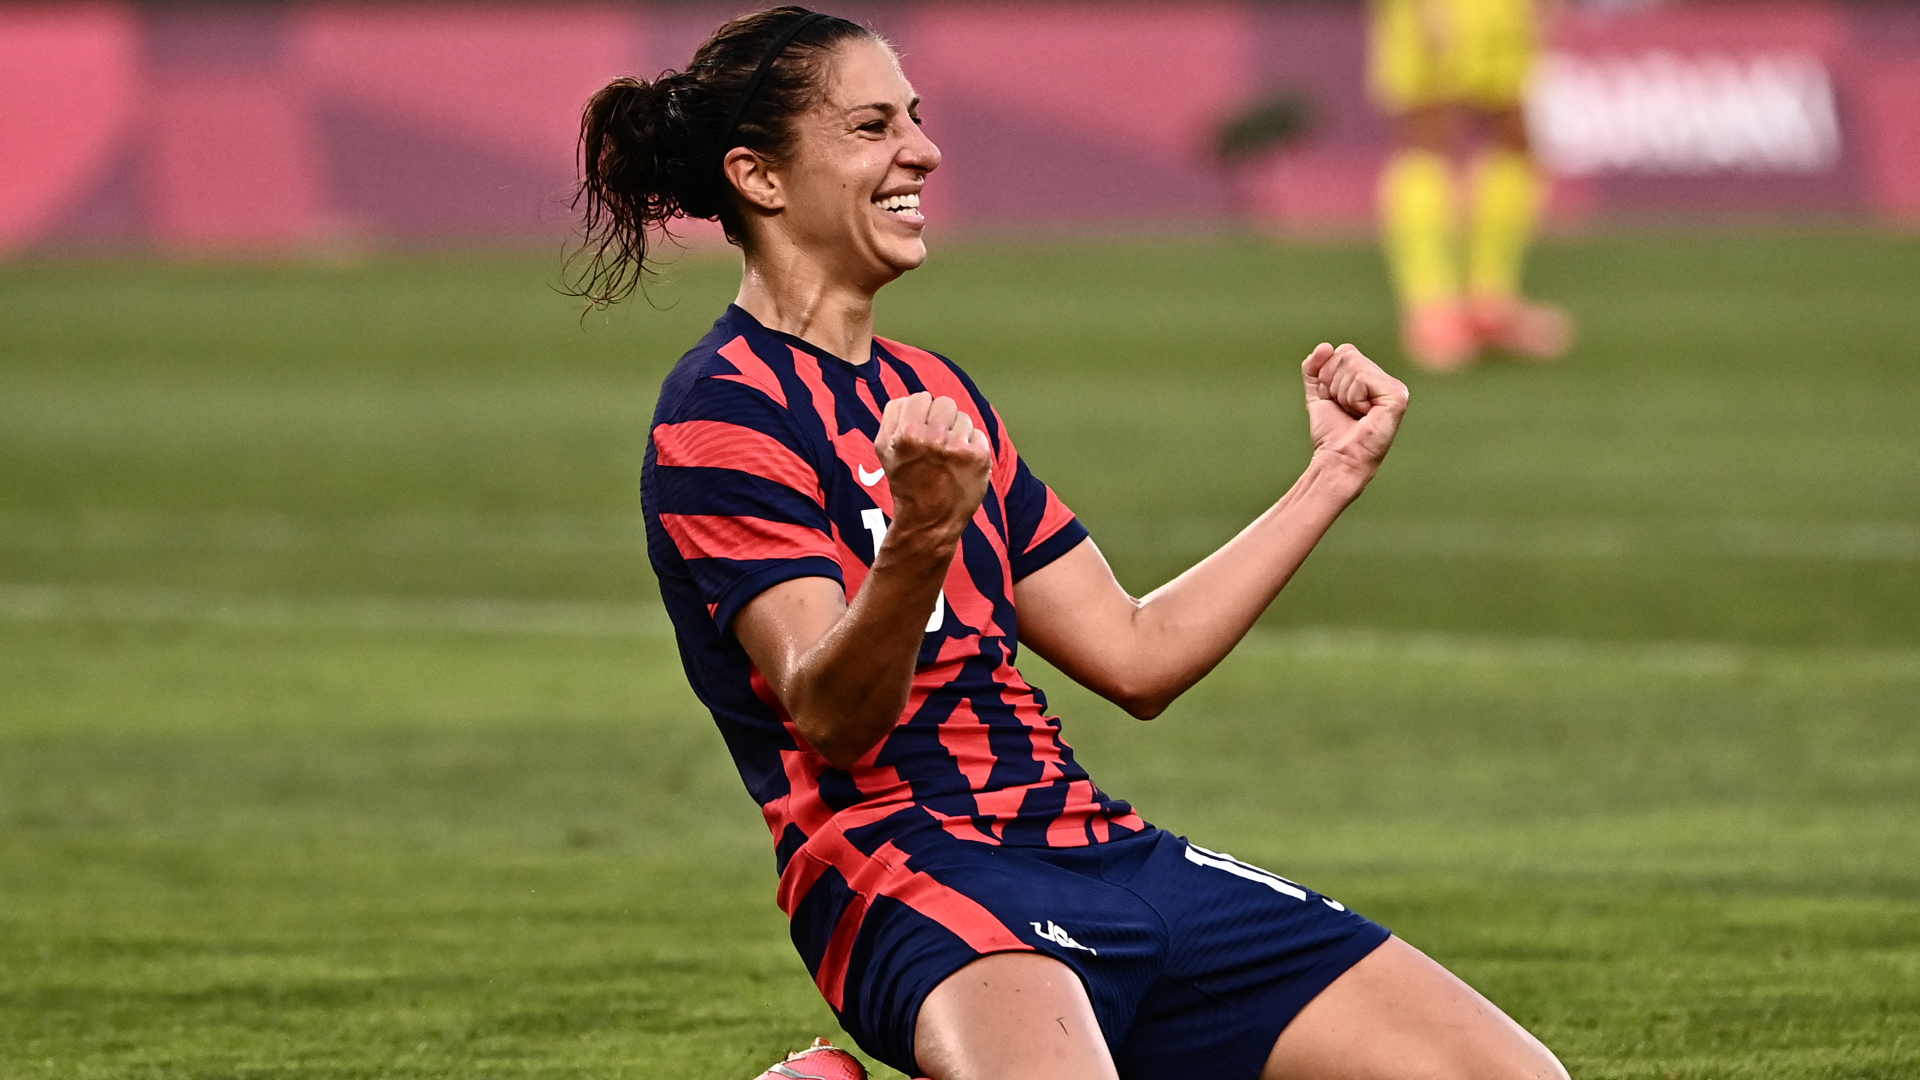 USWNT star Lloyd hints at retirement after brace in bronze medal win vs Australia